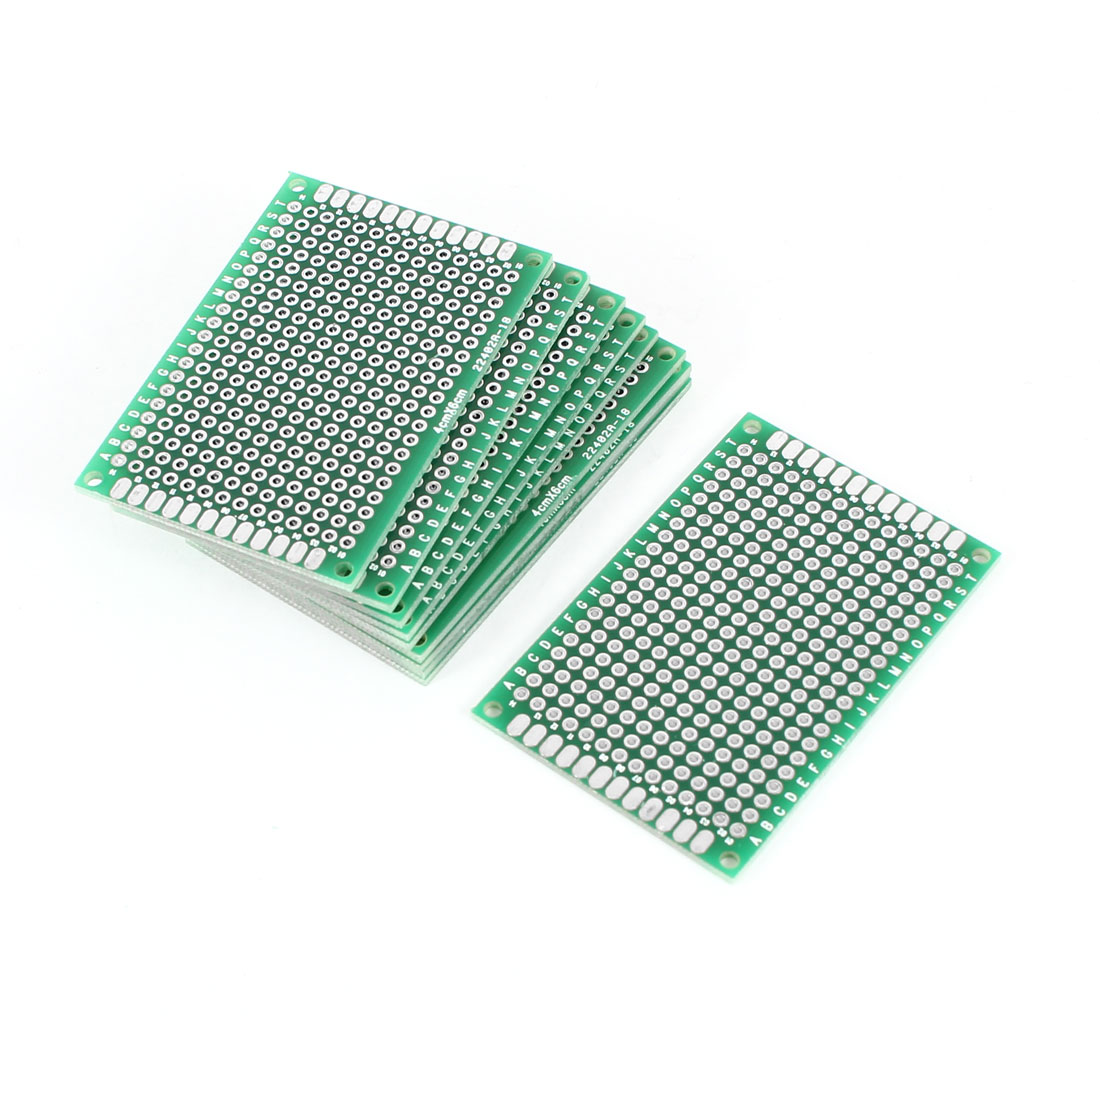 10PCS 4cm x 6cm FR-4 Double Sided Prototype Paper Tinned Universal PCB Print Circuit Board for DIY